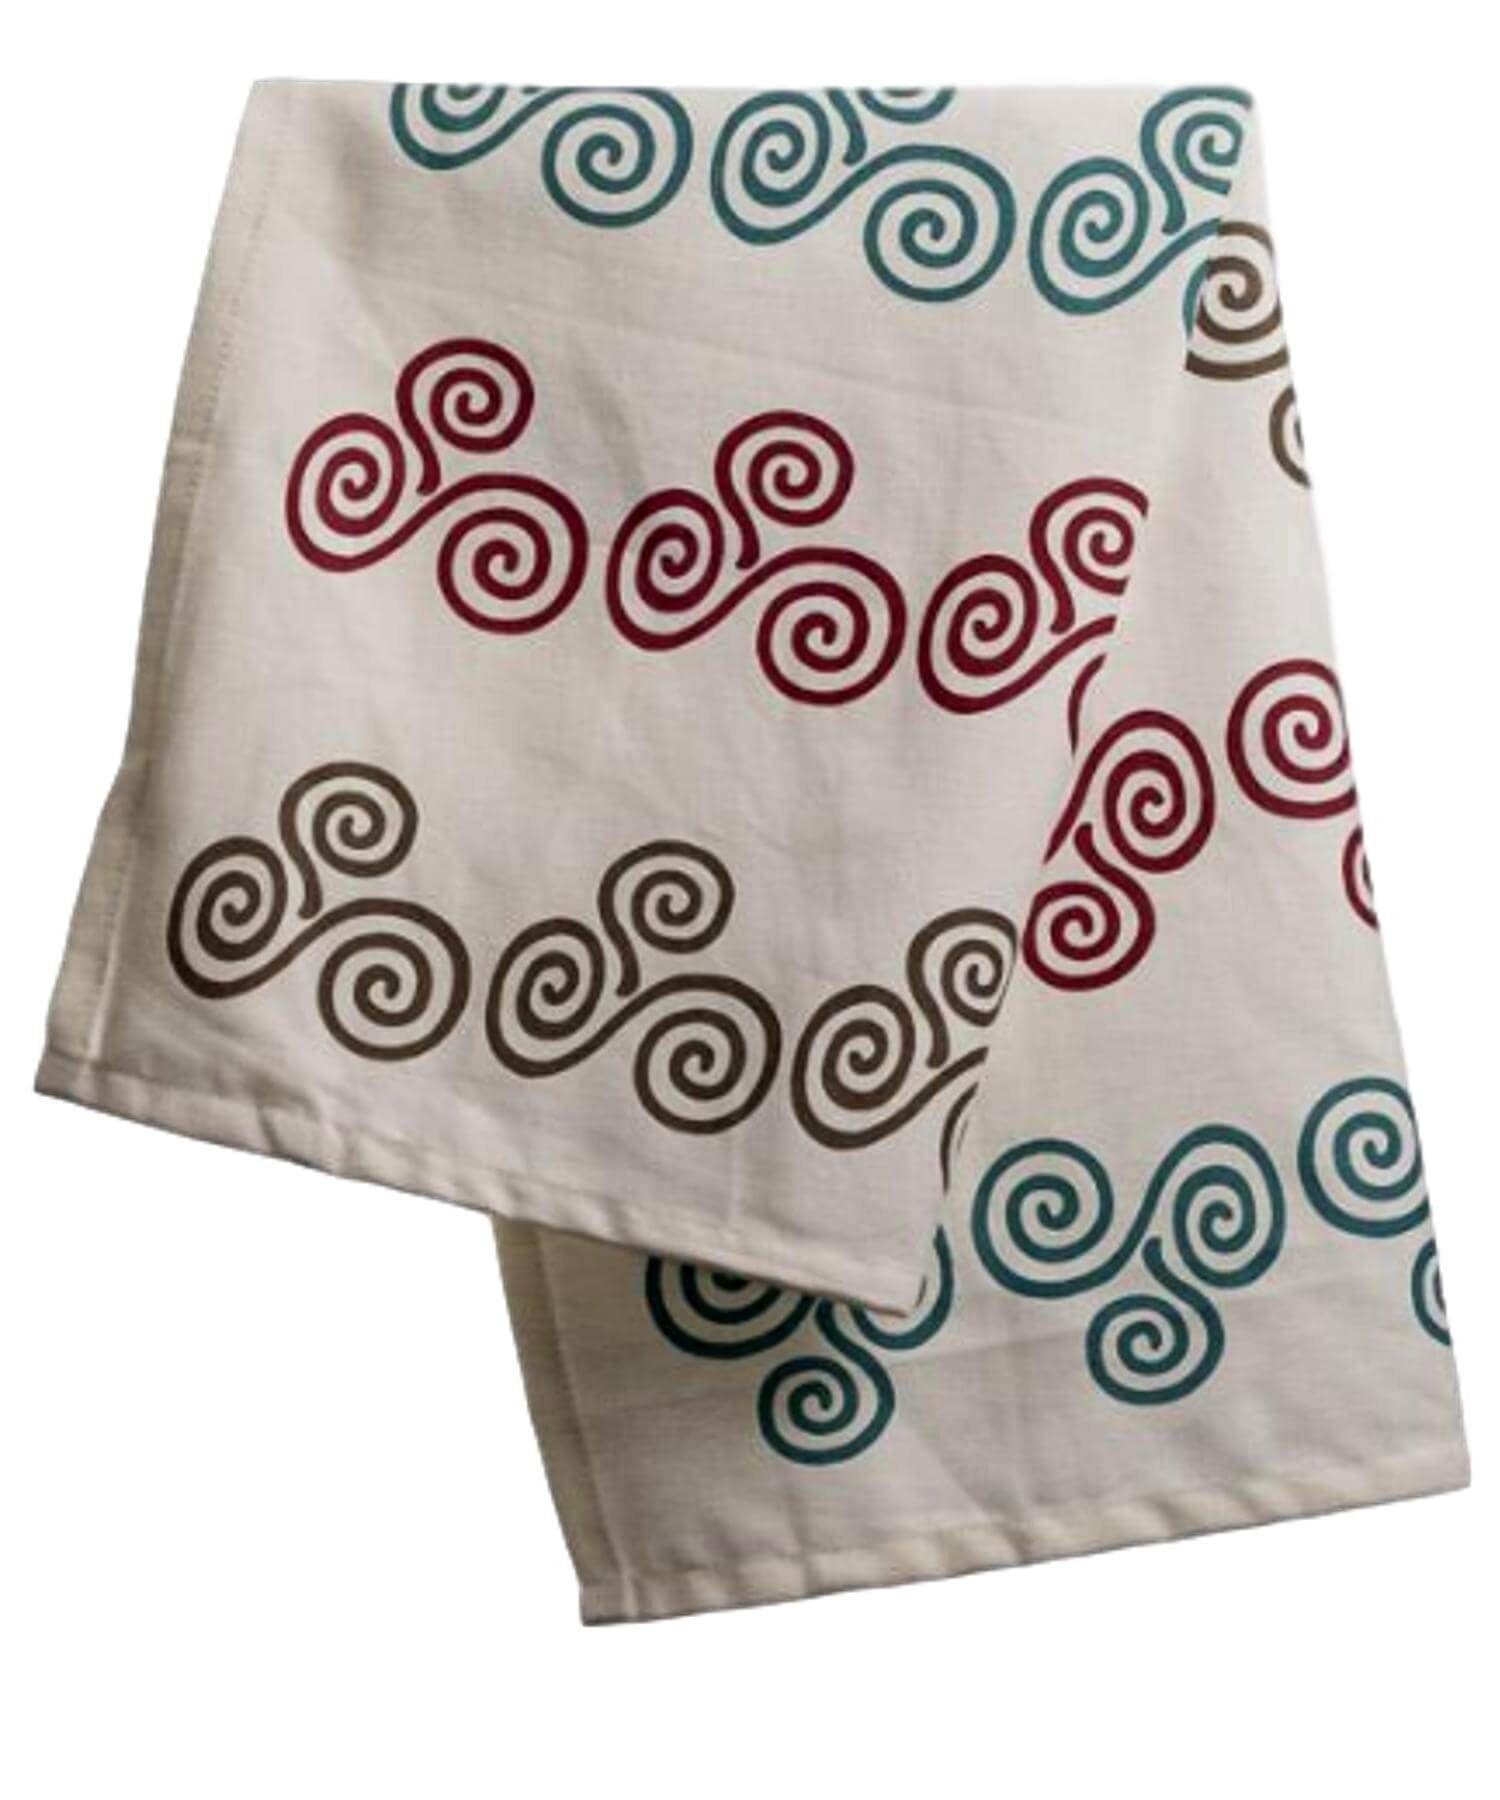 Teatowel - Triple Spiral - [Wild Goose] - Kitchen & Dining Textiles - Irish Gifts